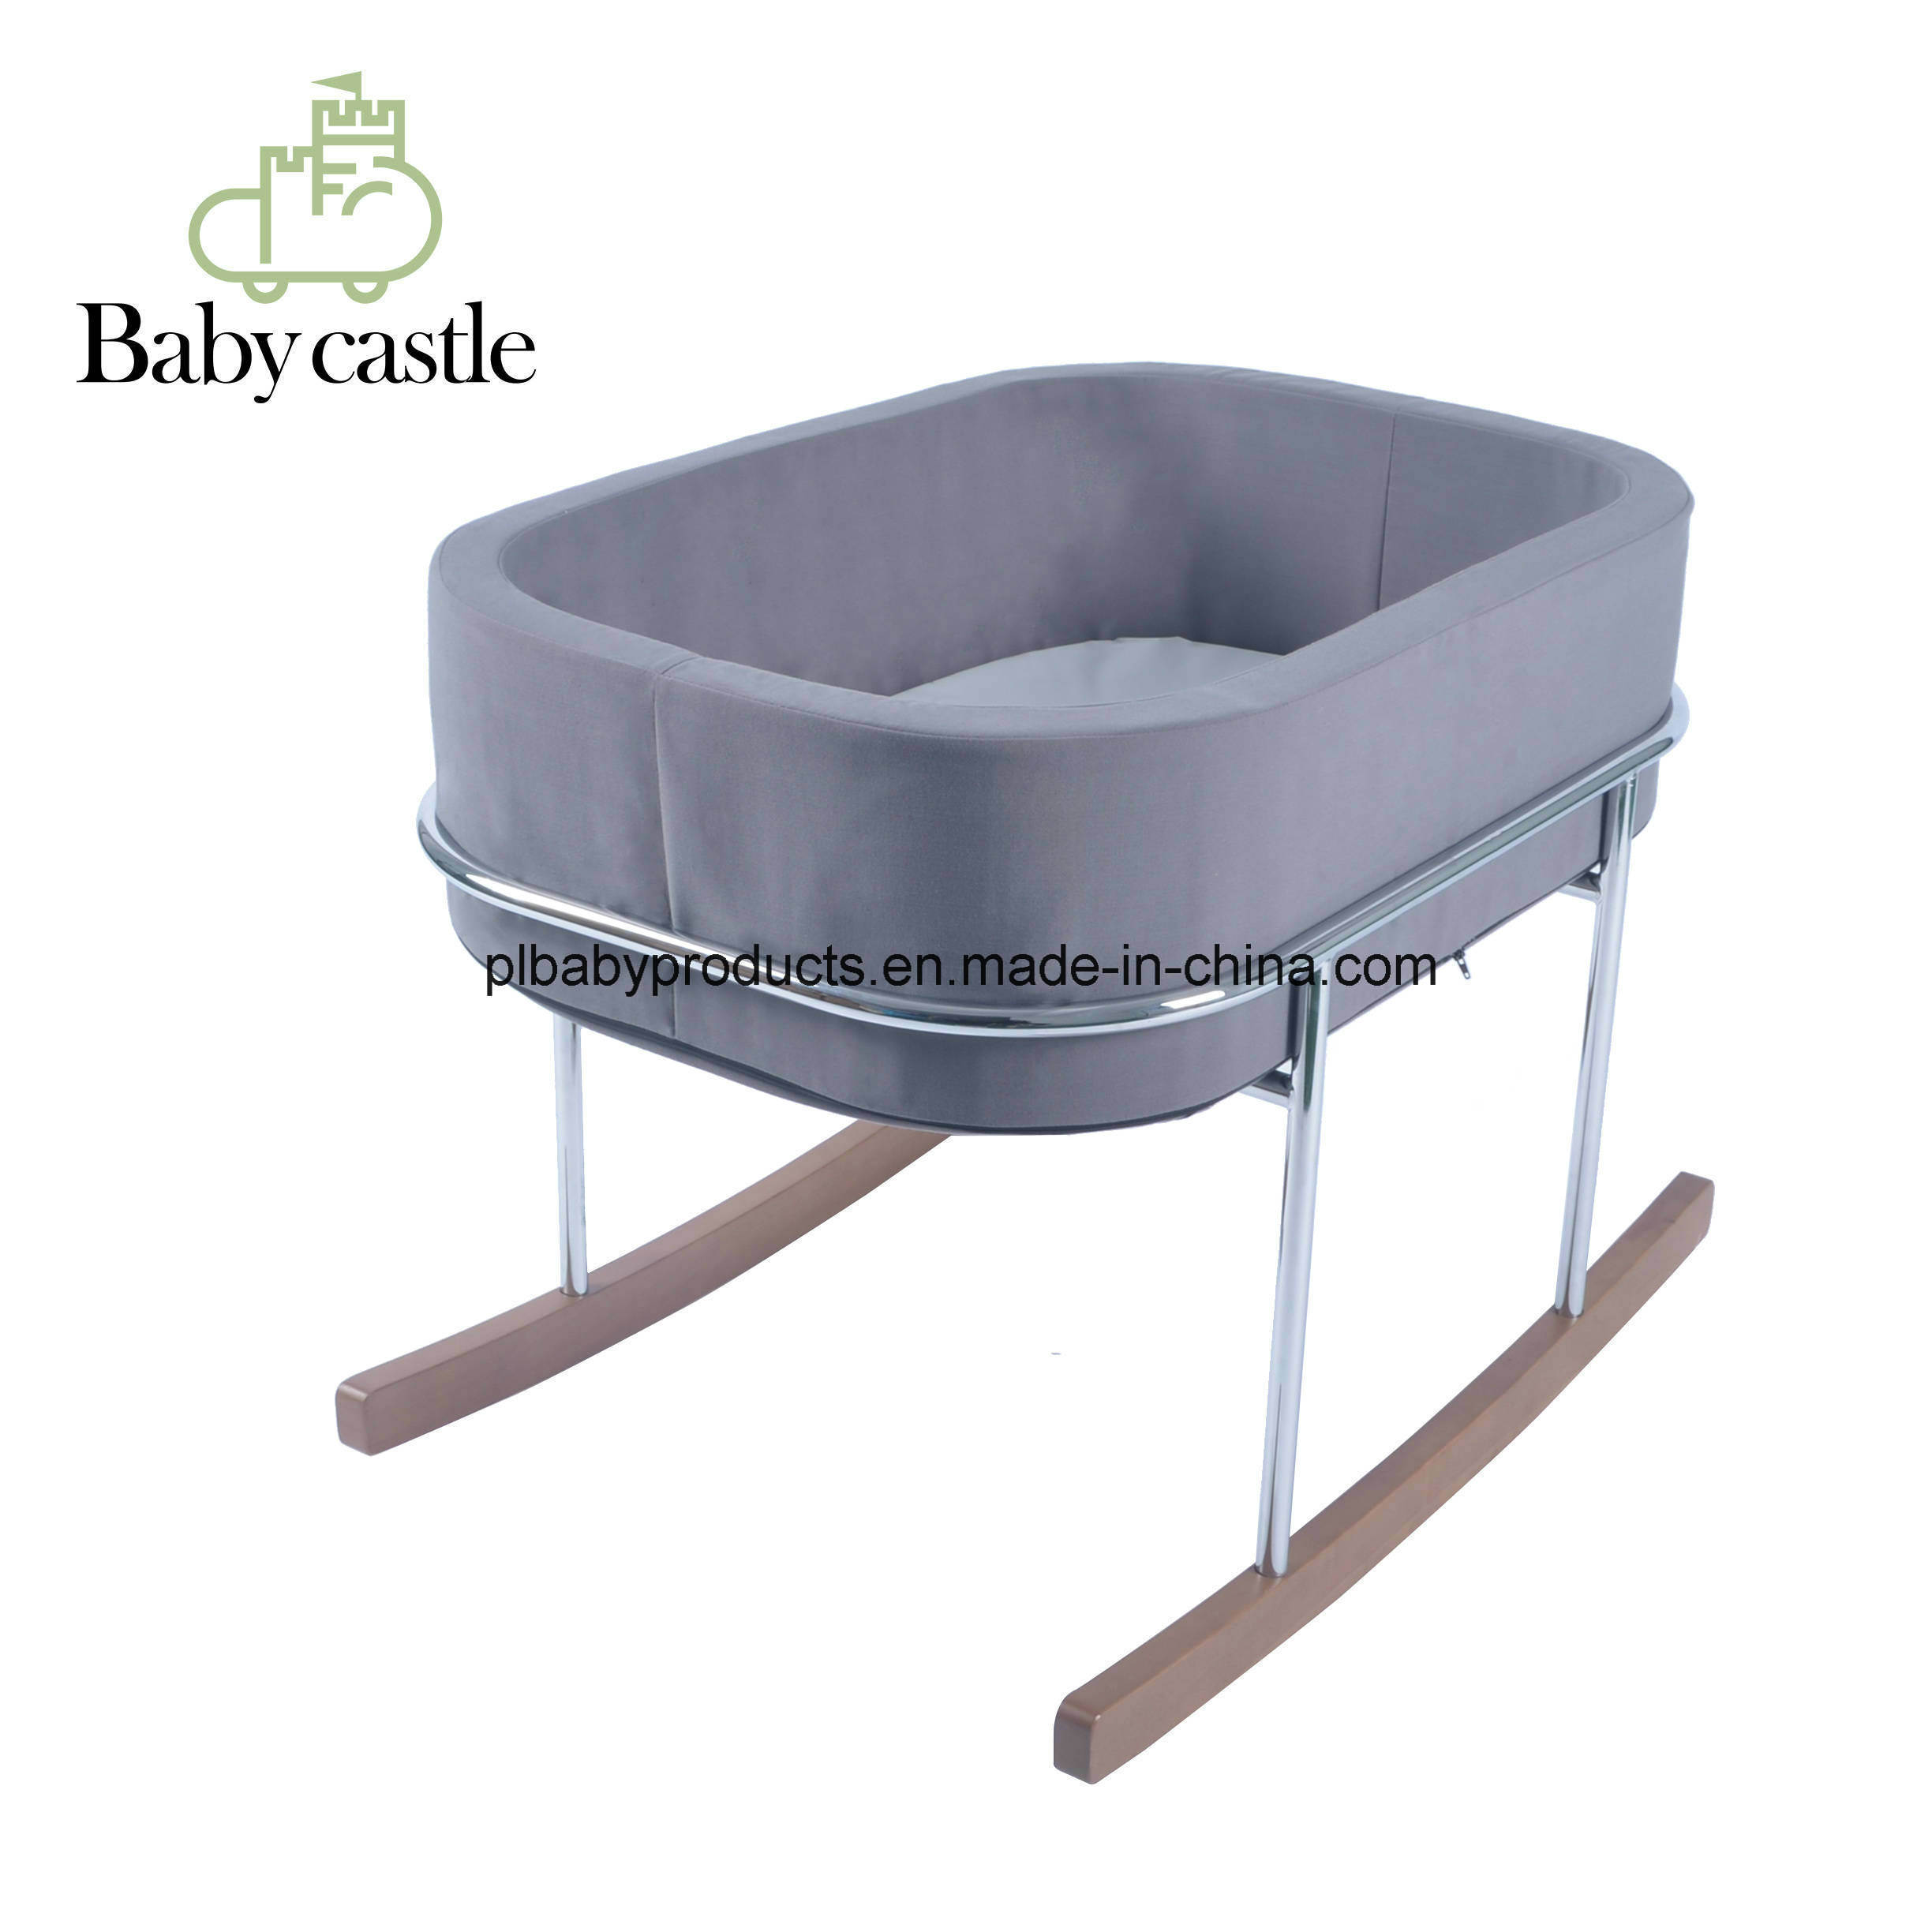 European standard baby play ard baby bed portable baby crib travel cot baby playpen gift